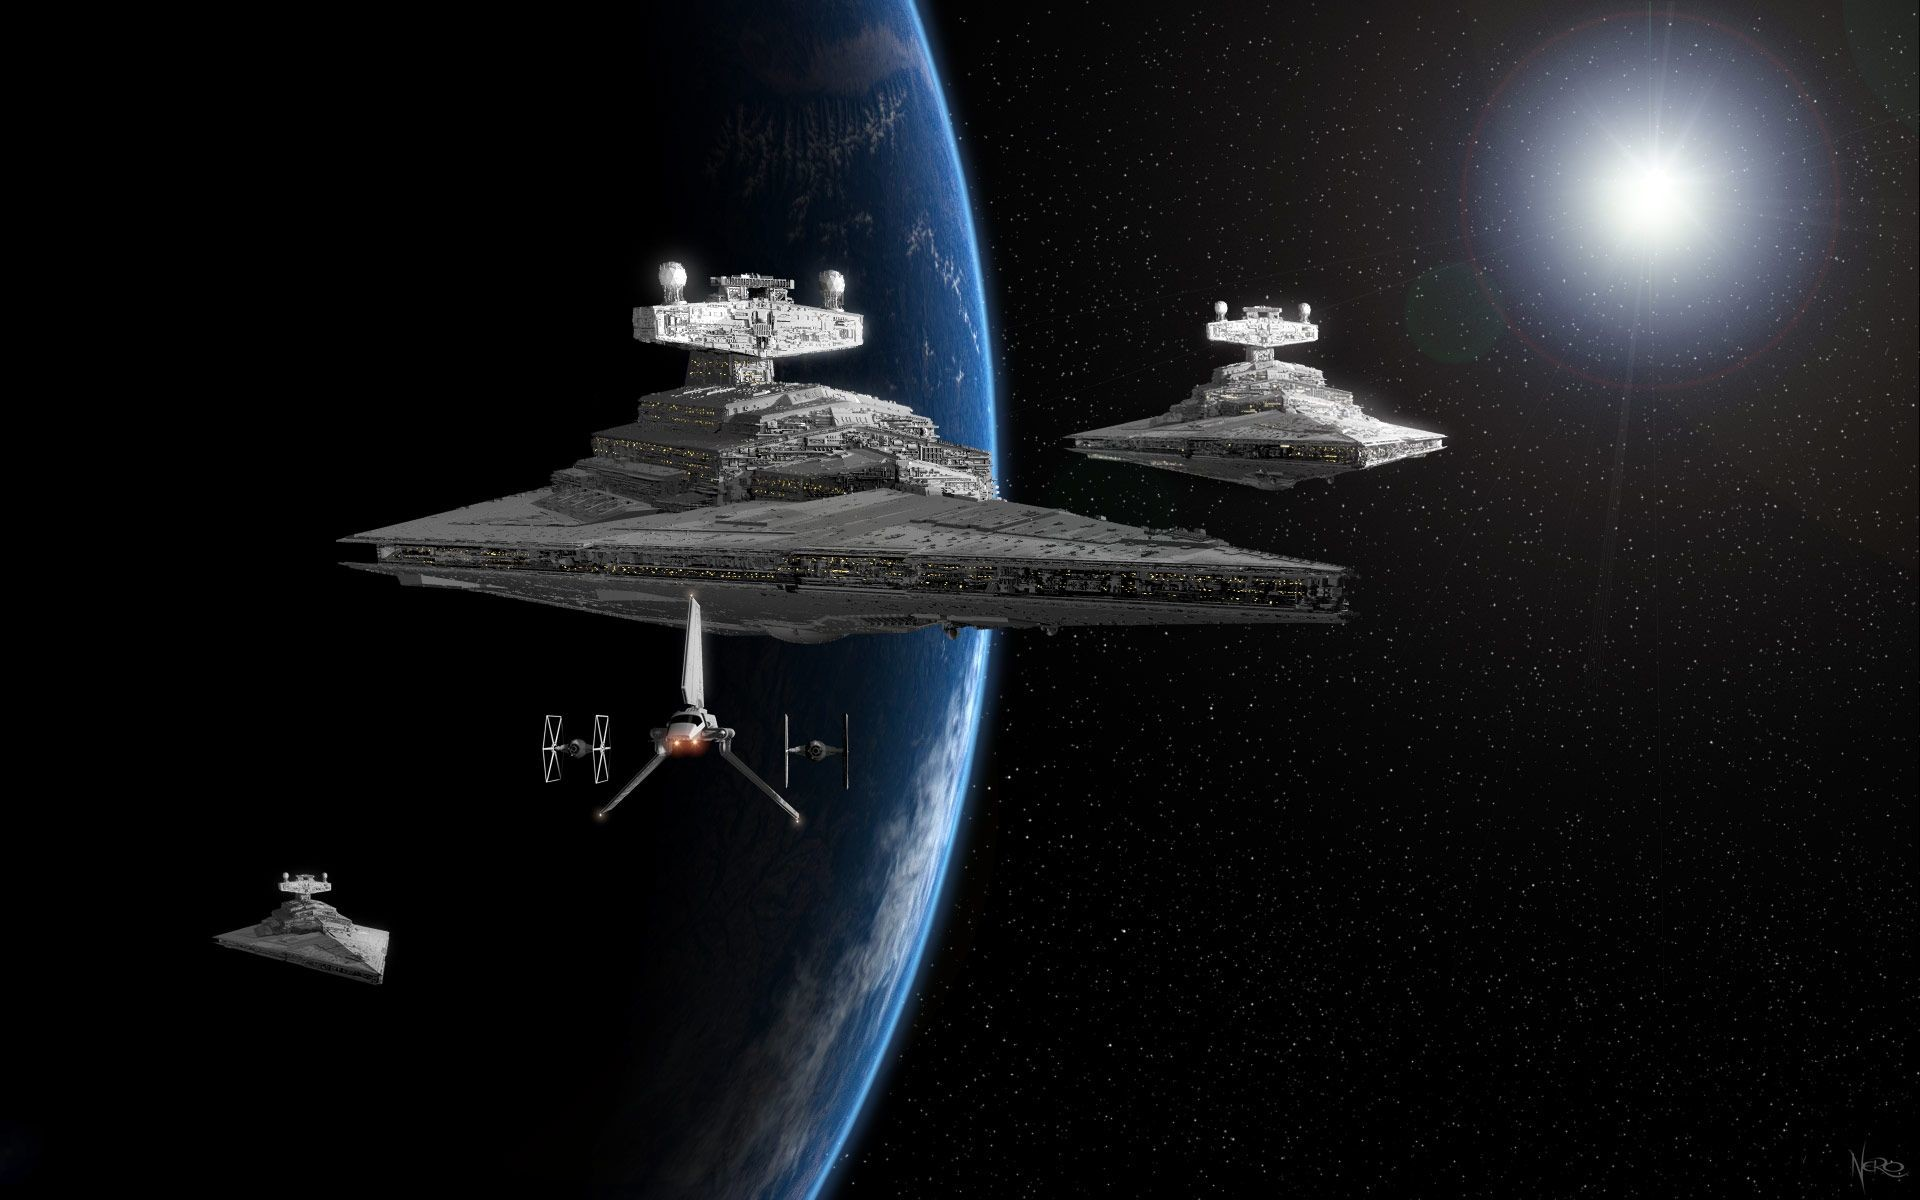 Star Wars Hd Wallpapers Page 2